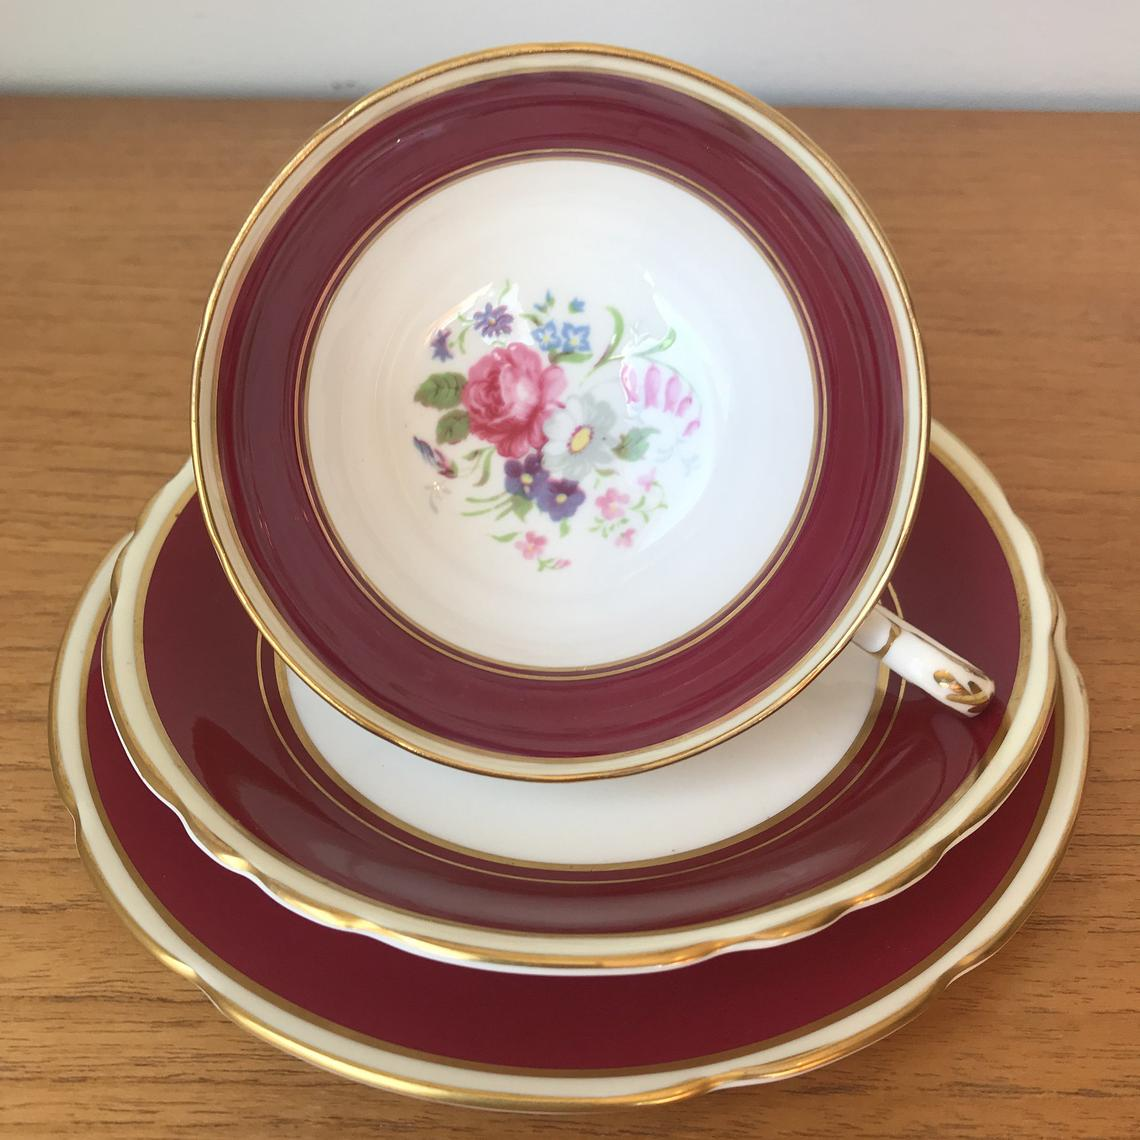 Red Paragon Tea Cup Trio, Vintage Floral Teacup Saucer and Side Plate, Flower Bone China, Red Dark Pink set, 1950s